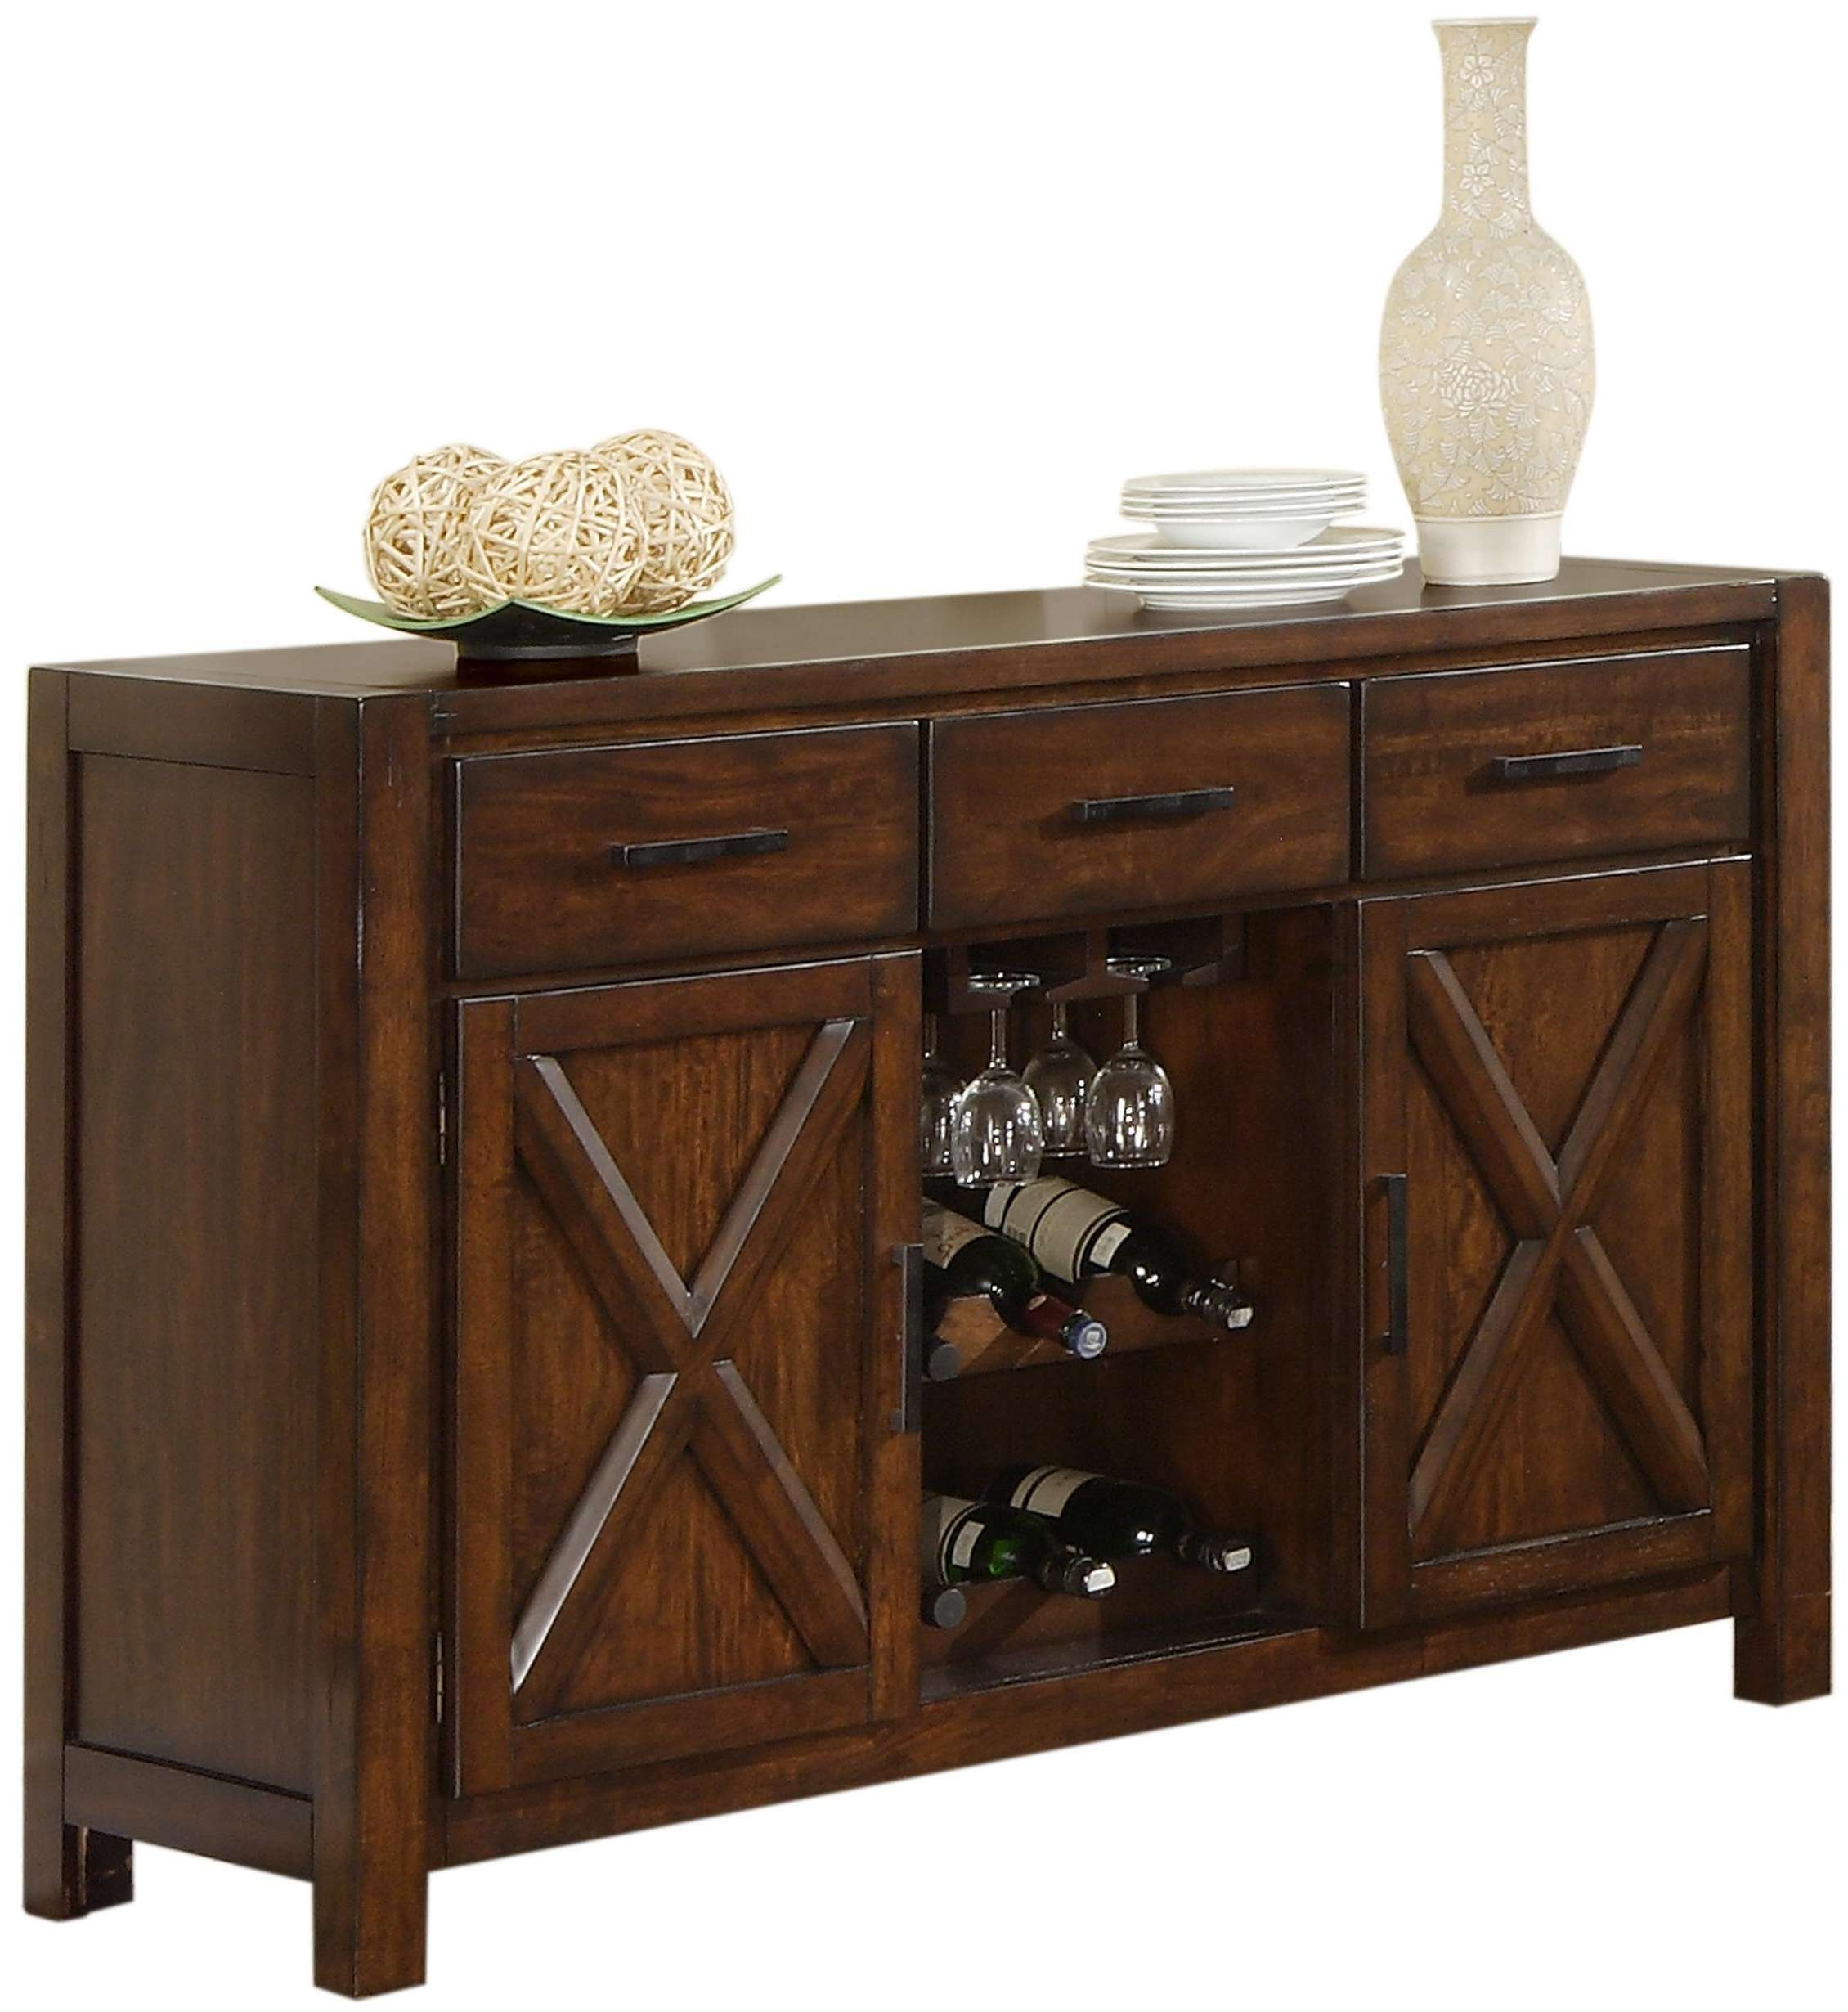 Holland House Lakeshore Dining Sideboard W/ Wine Rack And Stem Intended For Sideboards With Wine Rack (View 7 of 20)